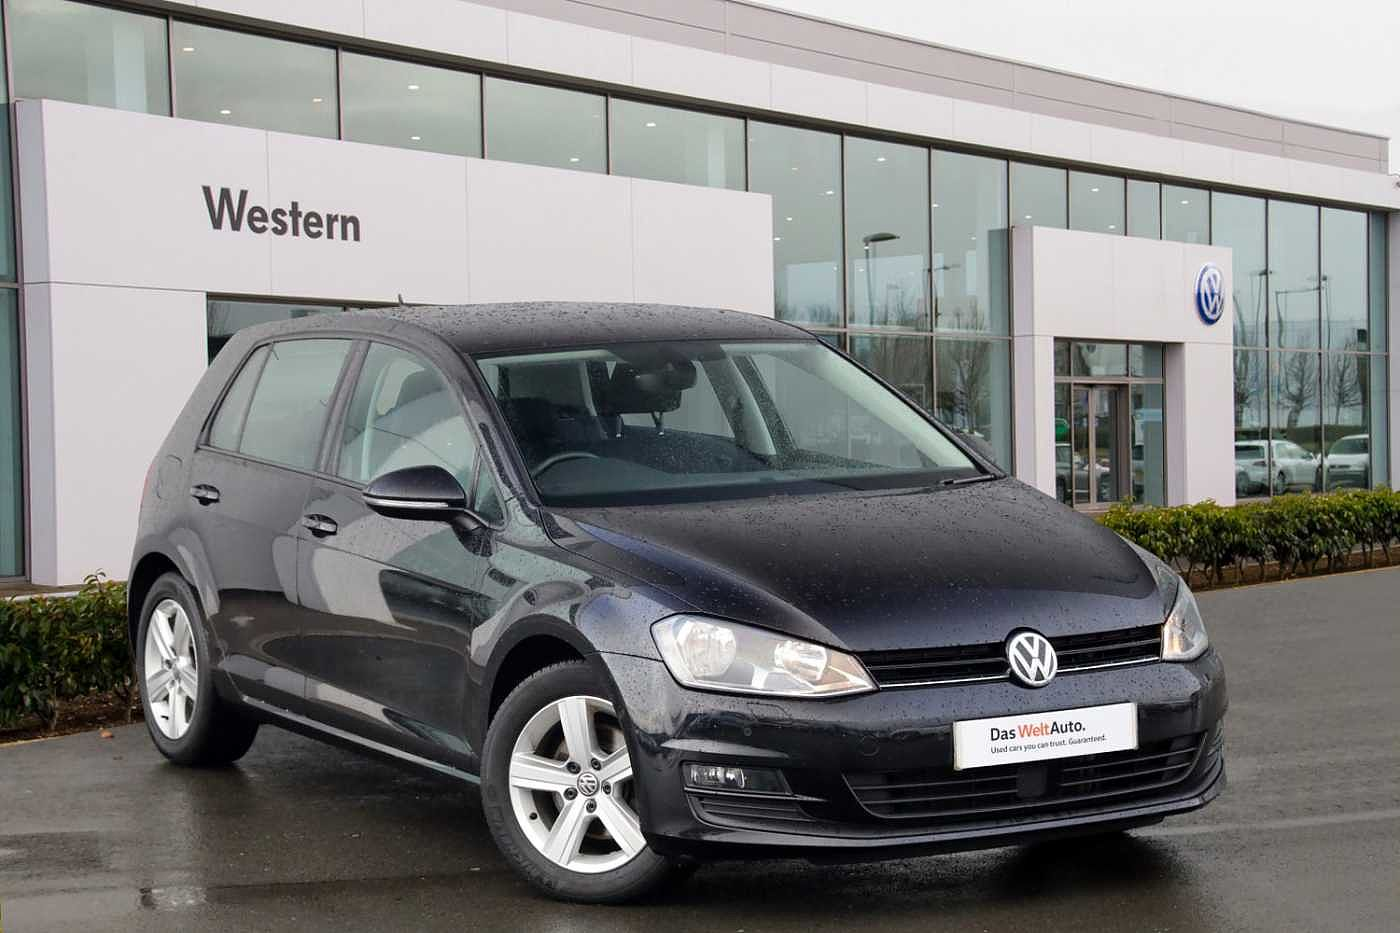 2016 Golf 1.4 TSI Match Edition 125PS 5Dr for Sale in Edinburgh